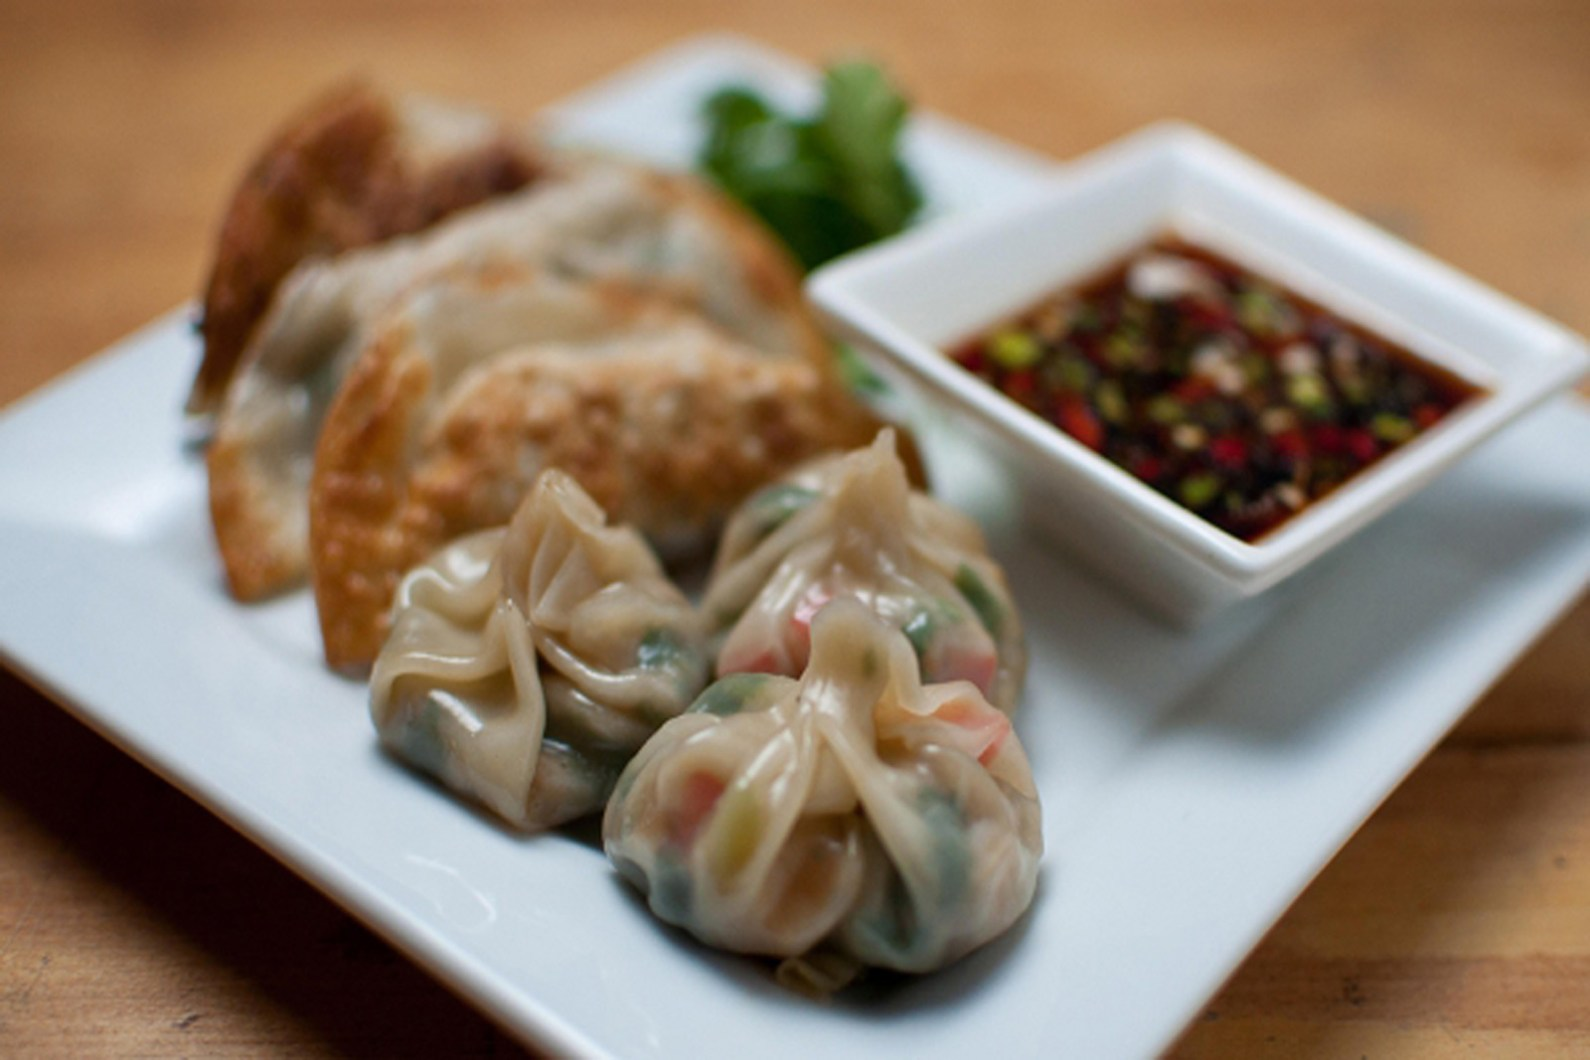 The Best Veggie Items on the Menu in a Chinese Restaurant - One ...